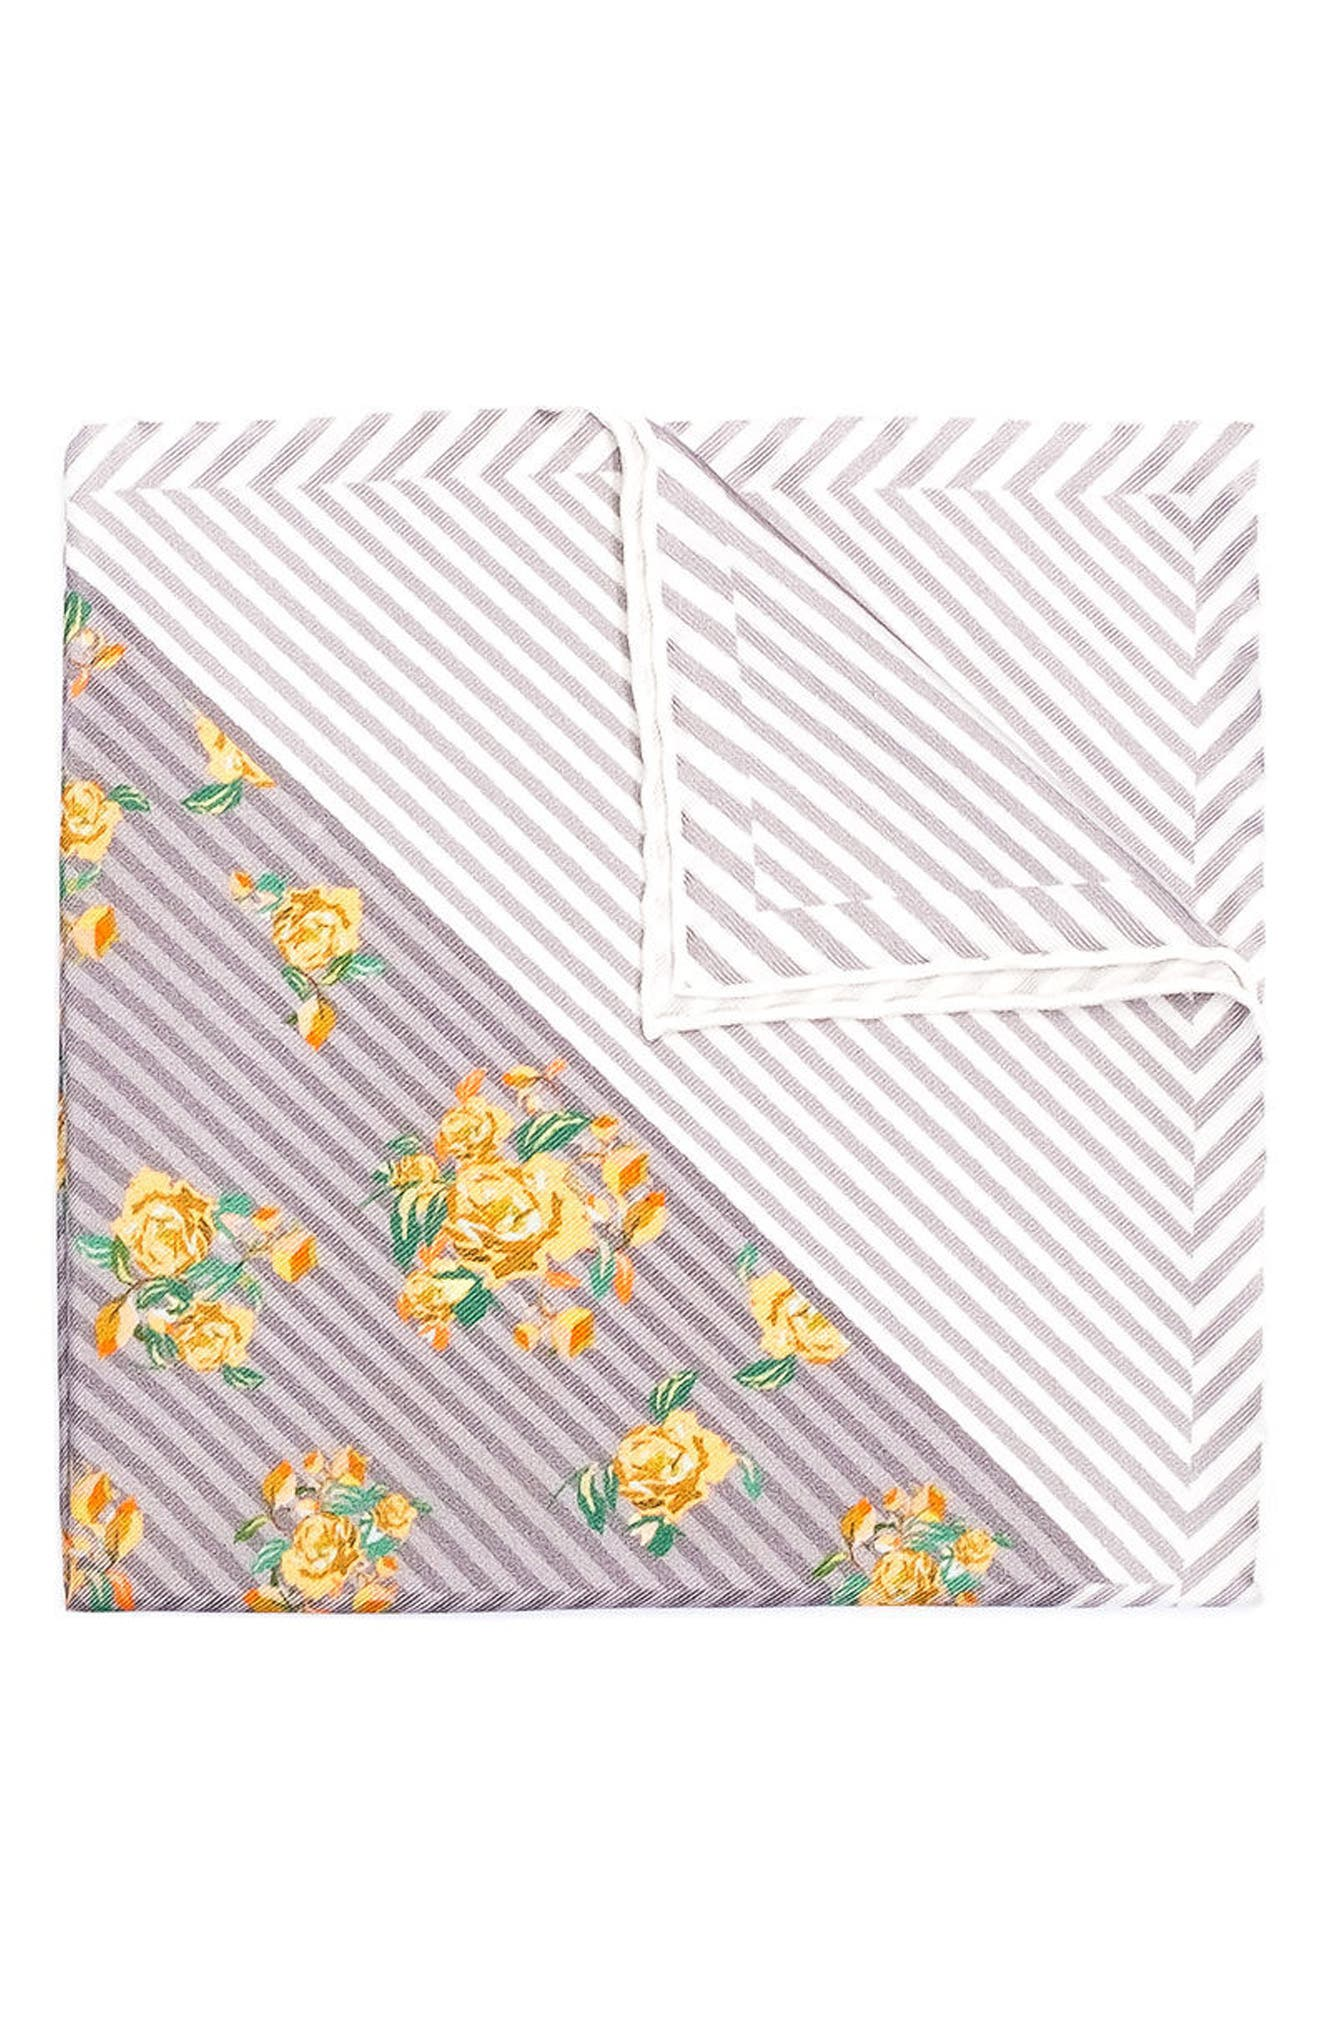 HOOK + ALBERT Atoll Silk Pocket Square, Main, color, 750